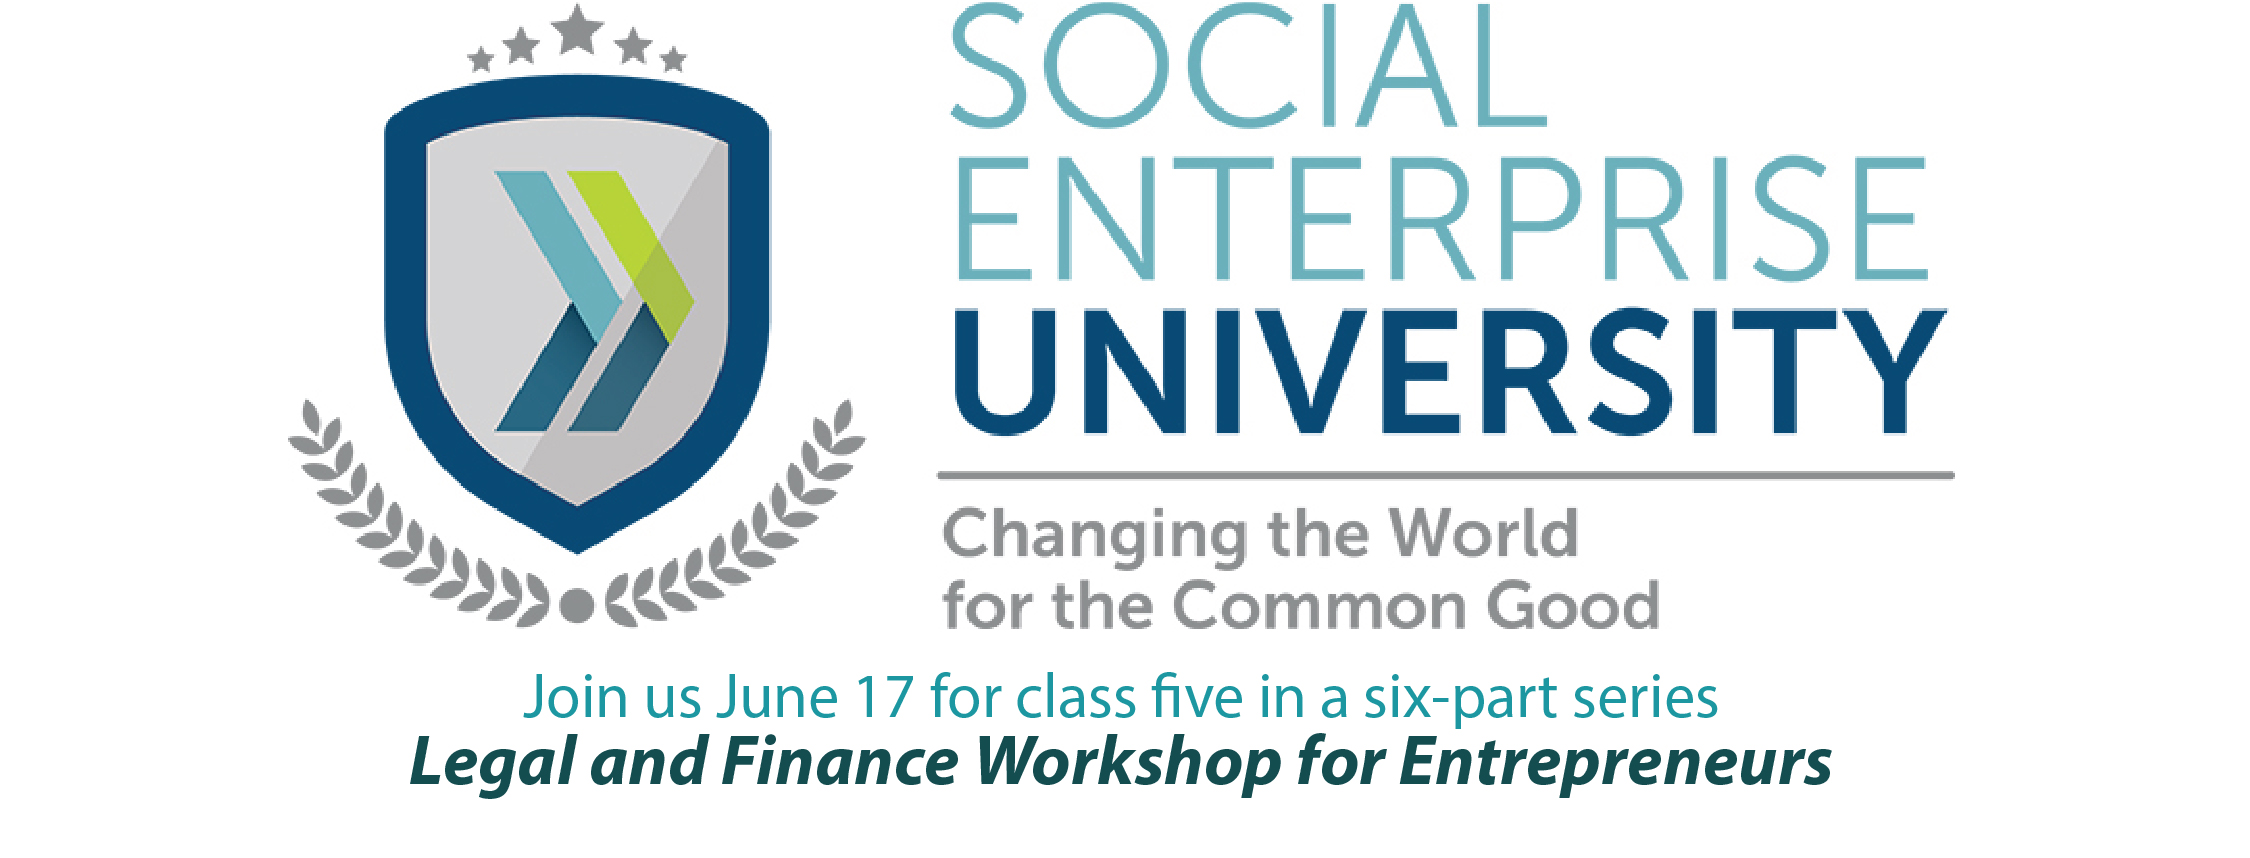 Register online for the fifth class of a six-part series